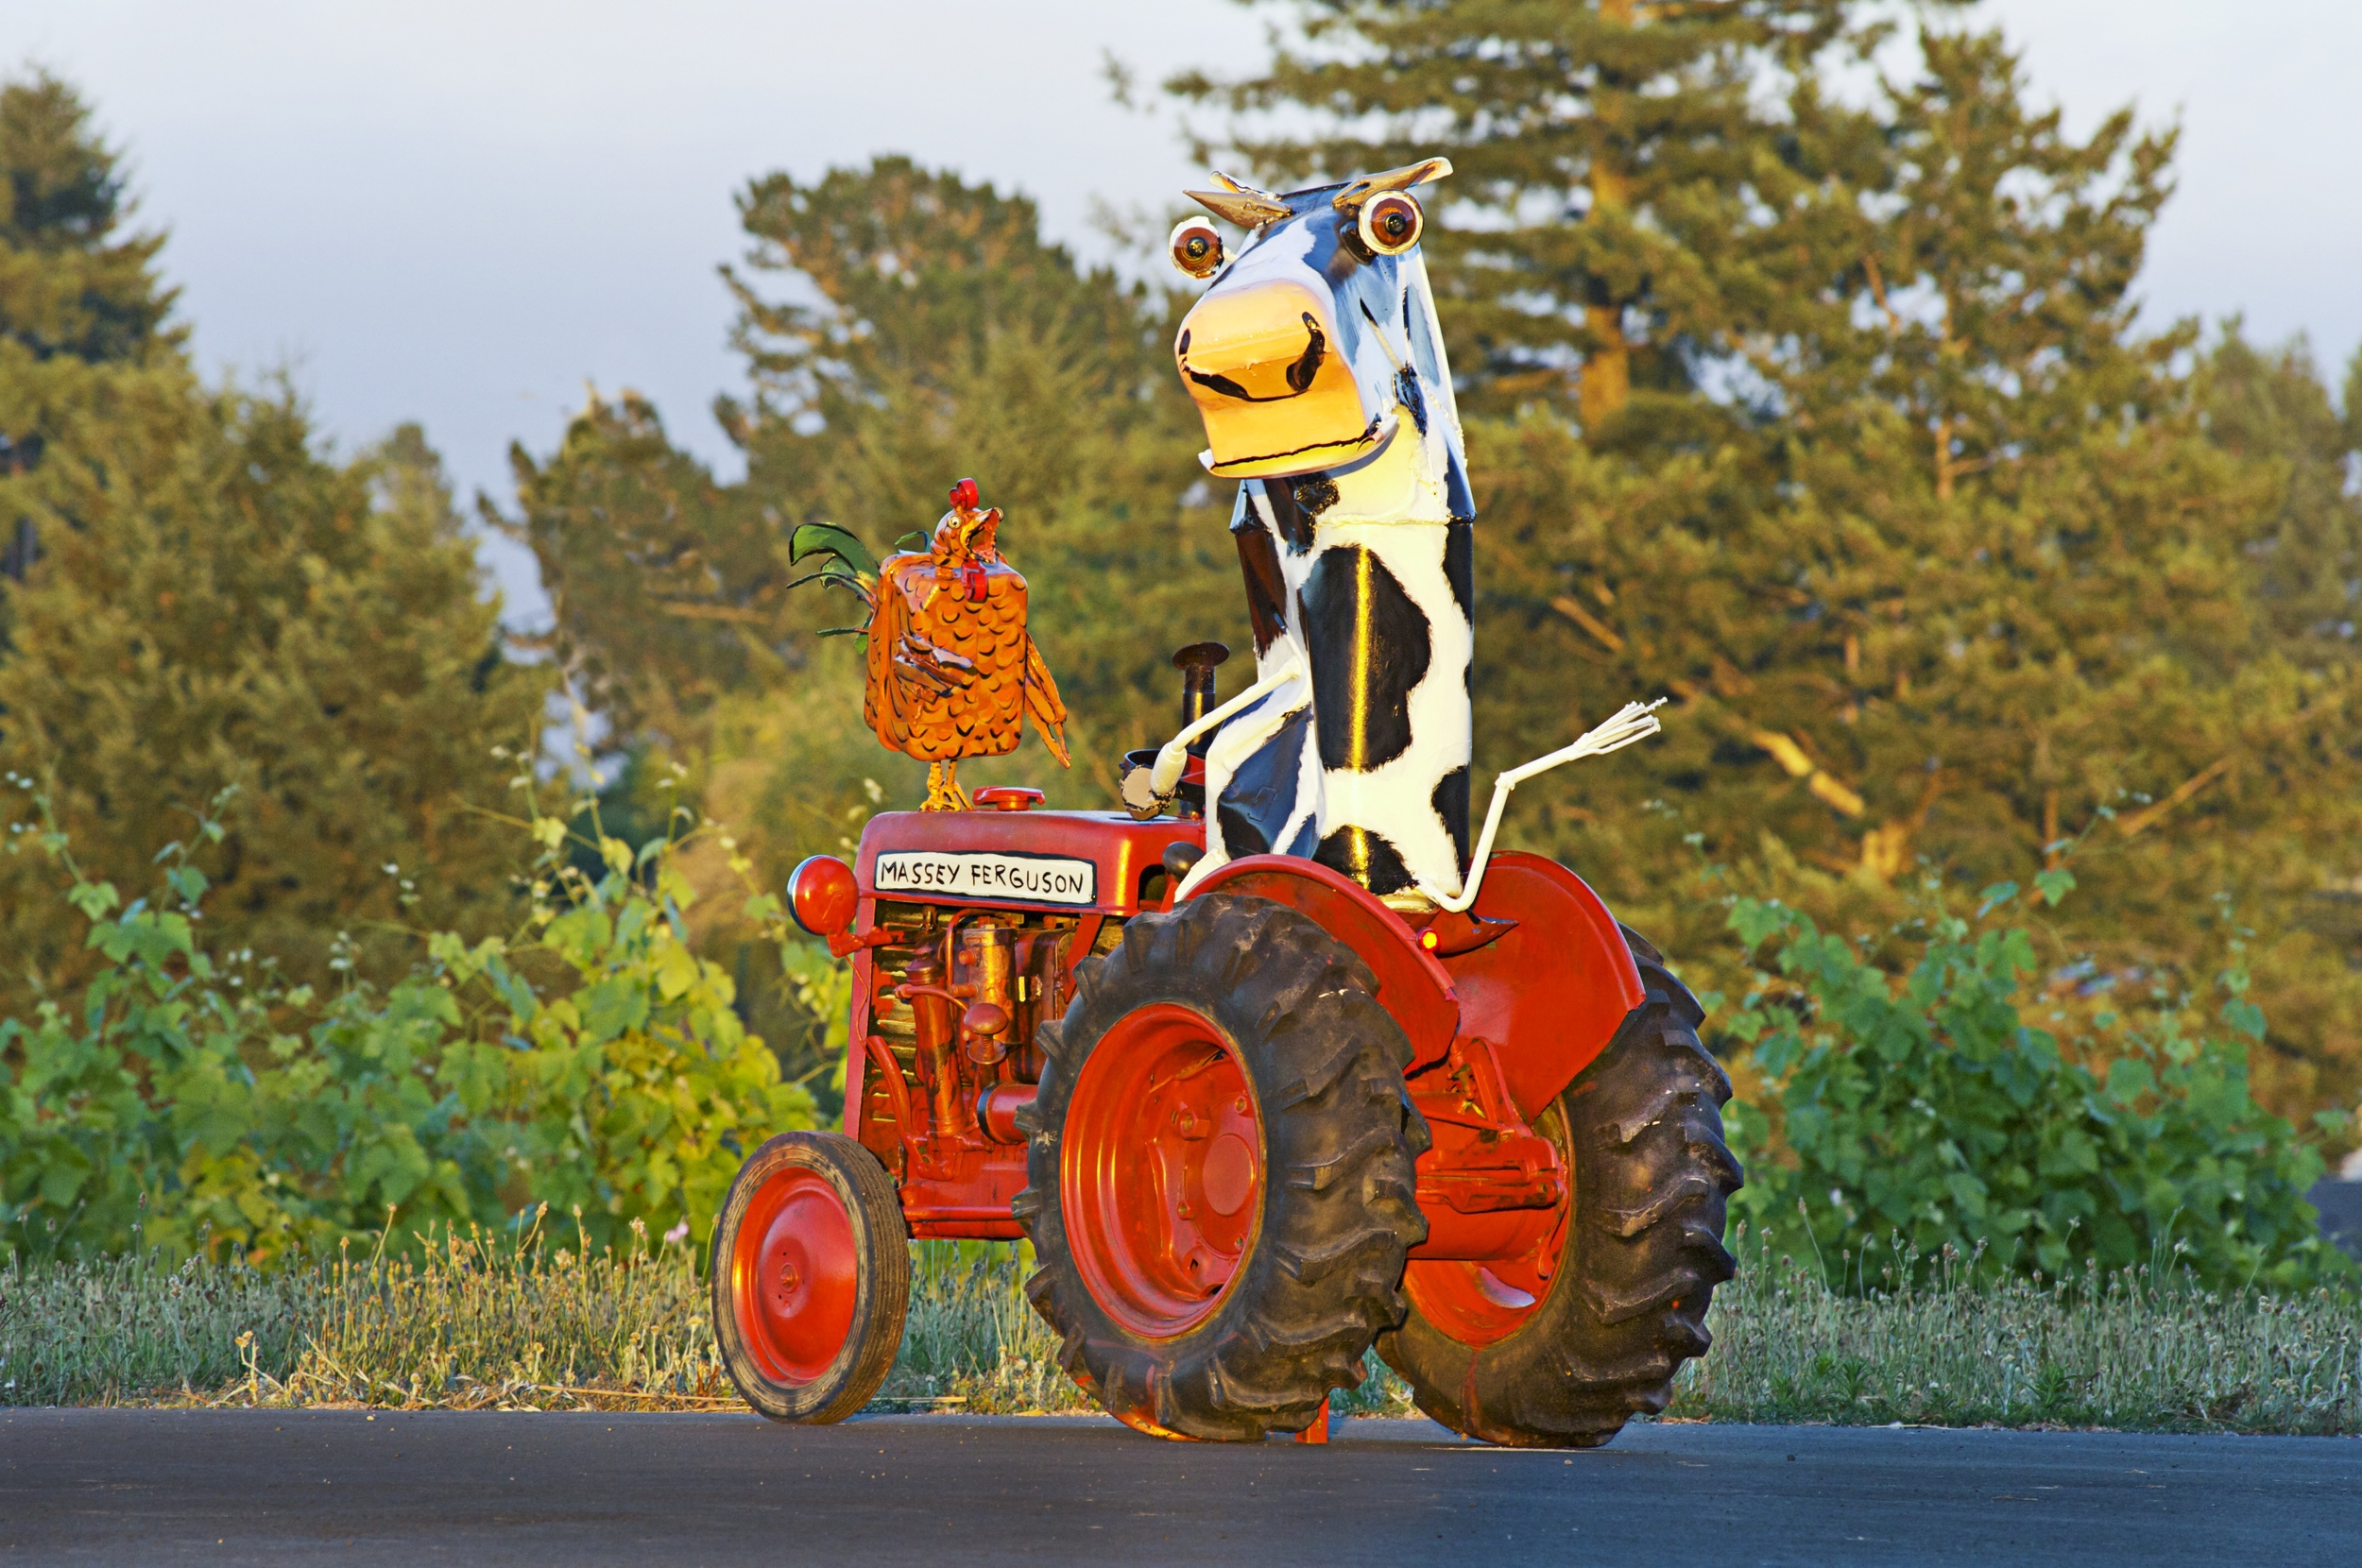 Cow-Chicken-Tractor-jpg.jpg